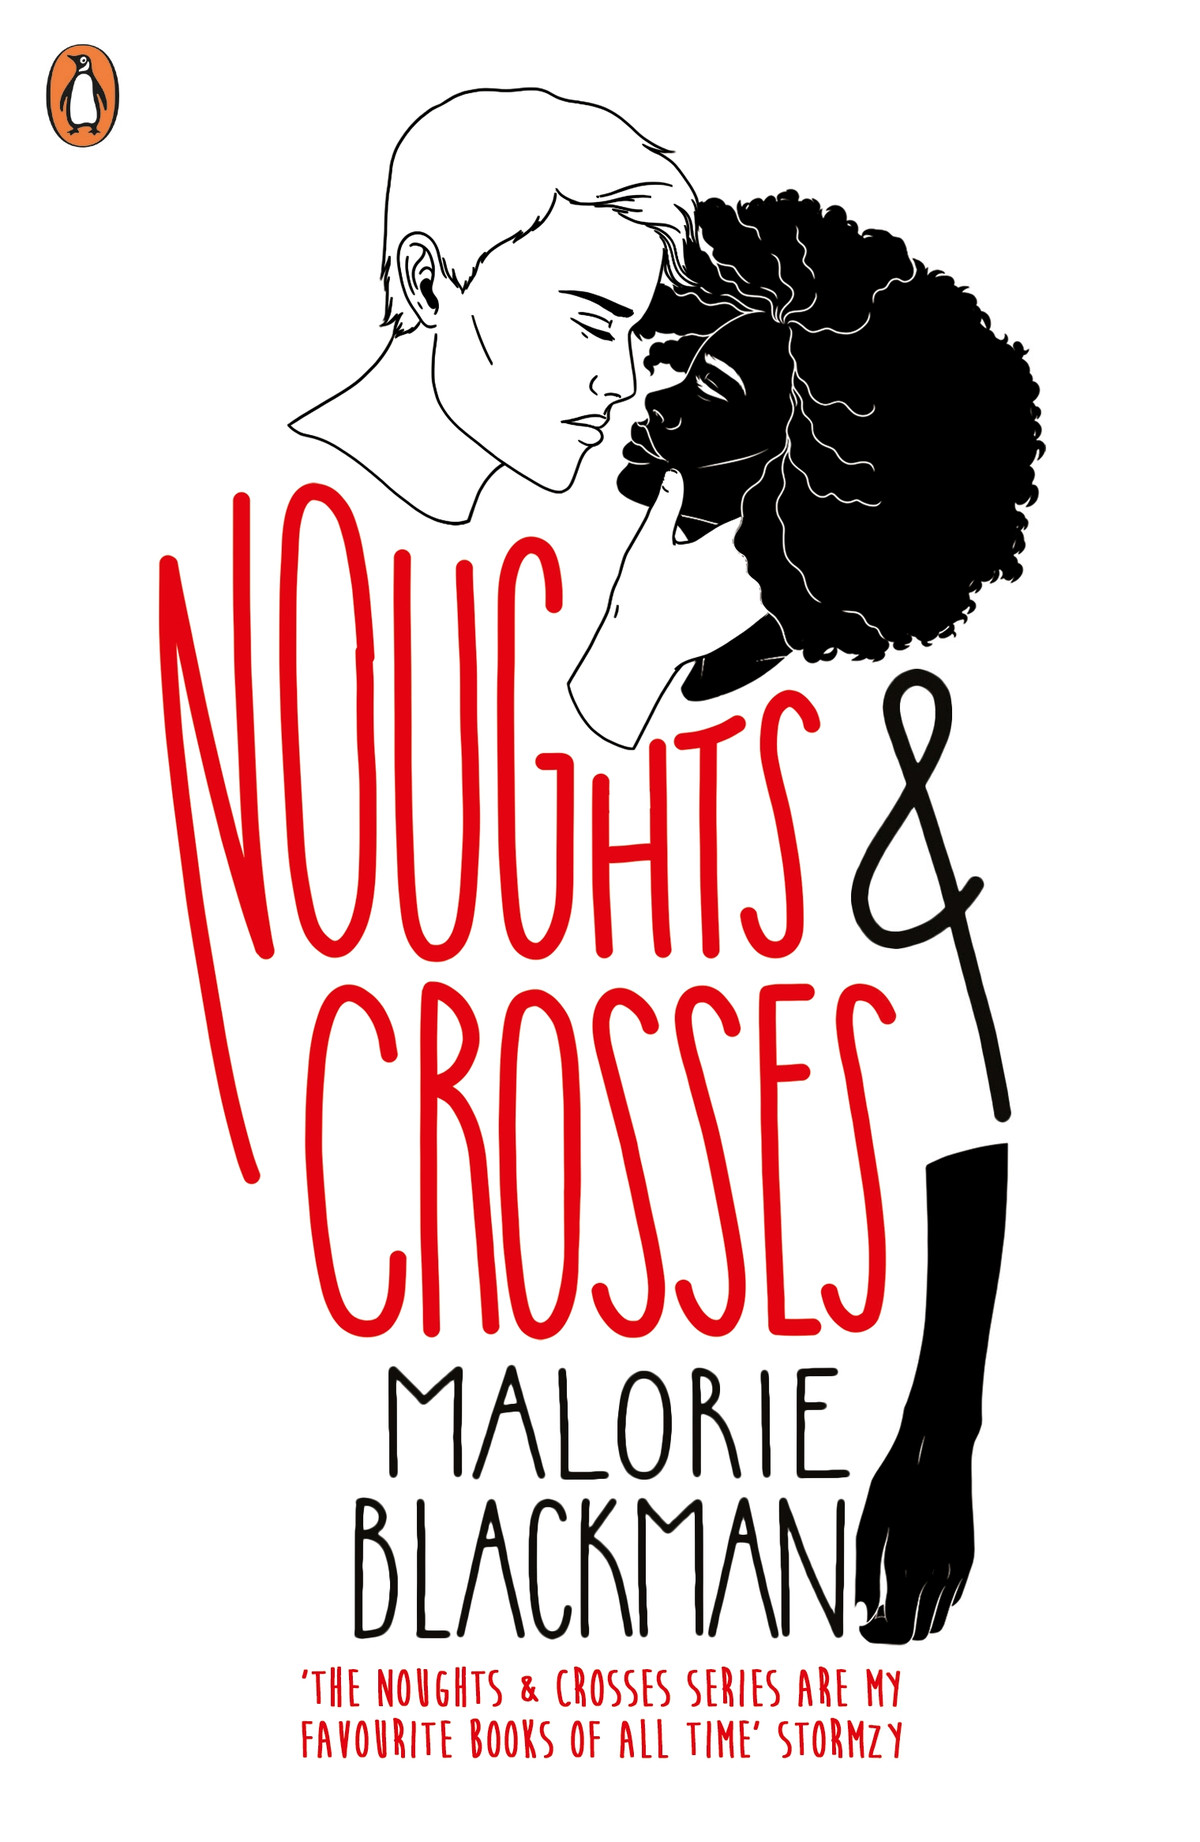 The cover of the British reprint edition of Malorie Blackman's Noughts & Crosses, with a white man caressing the face of a black woman